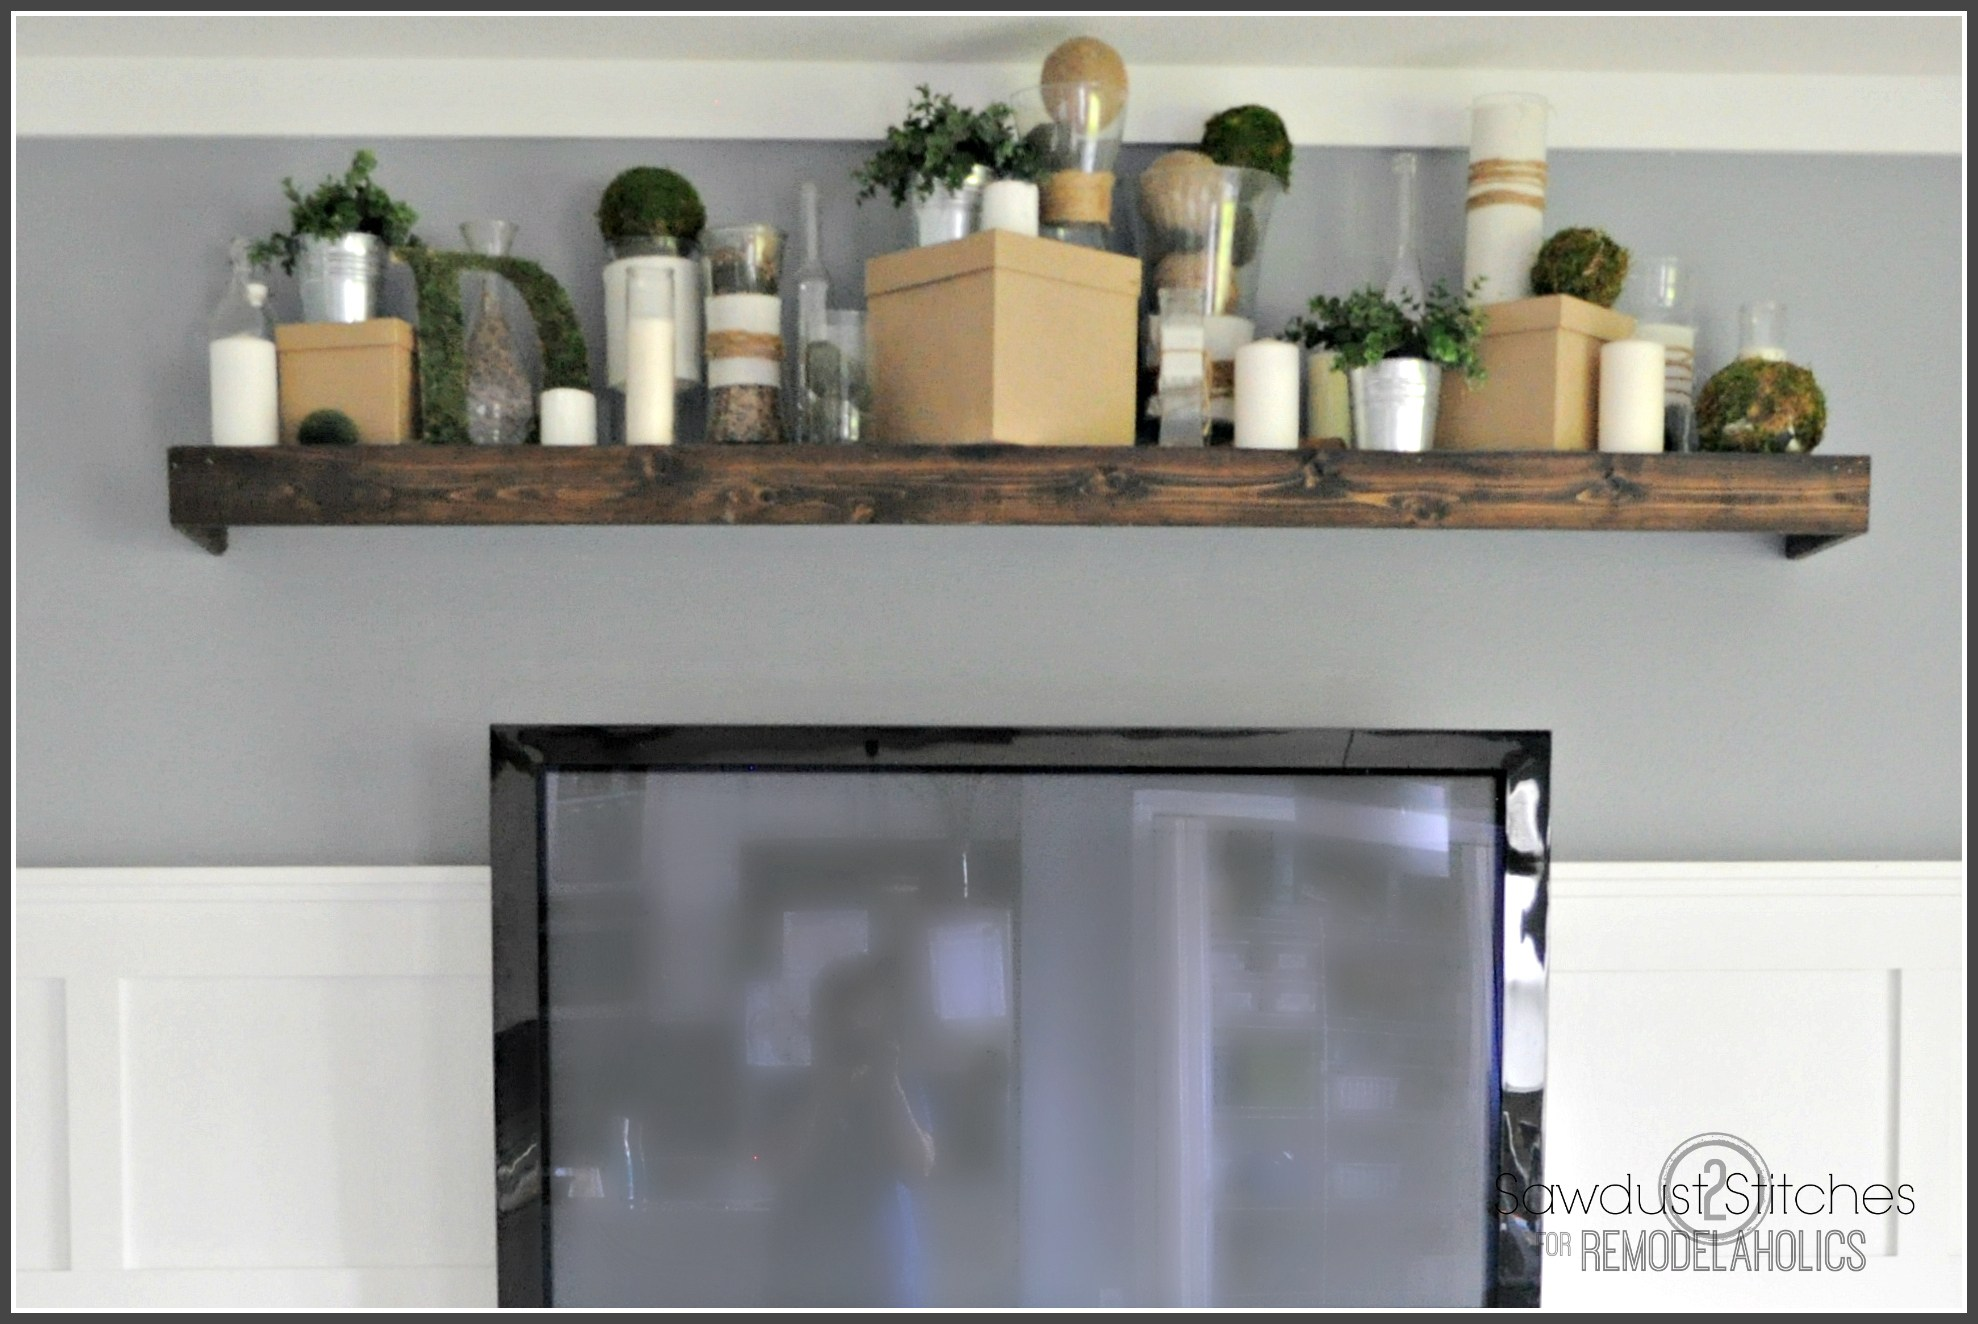 remodelaholic turn ikea shelf into pottery barn ledge finale floating shelves installation instructions wall hung unit bathroom rack over toilet space between kitchen cabinets